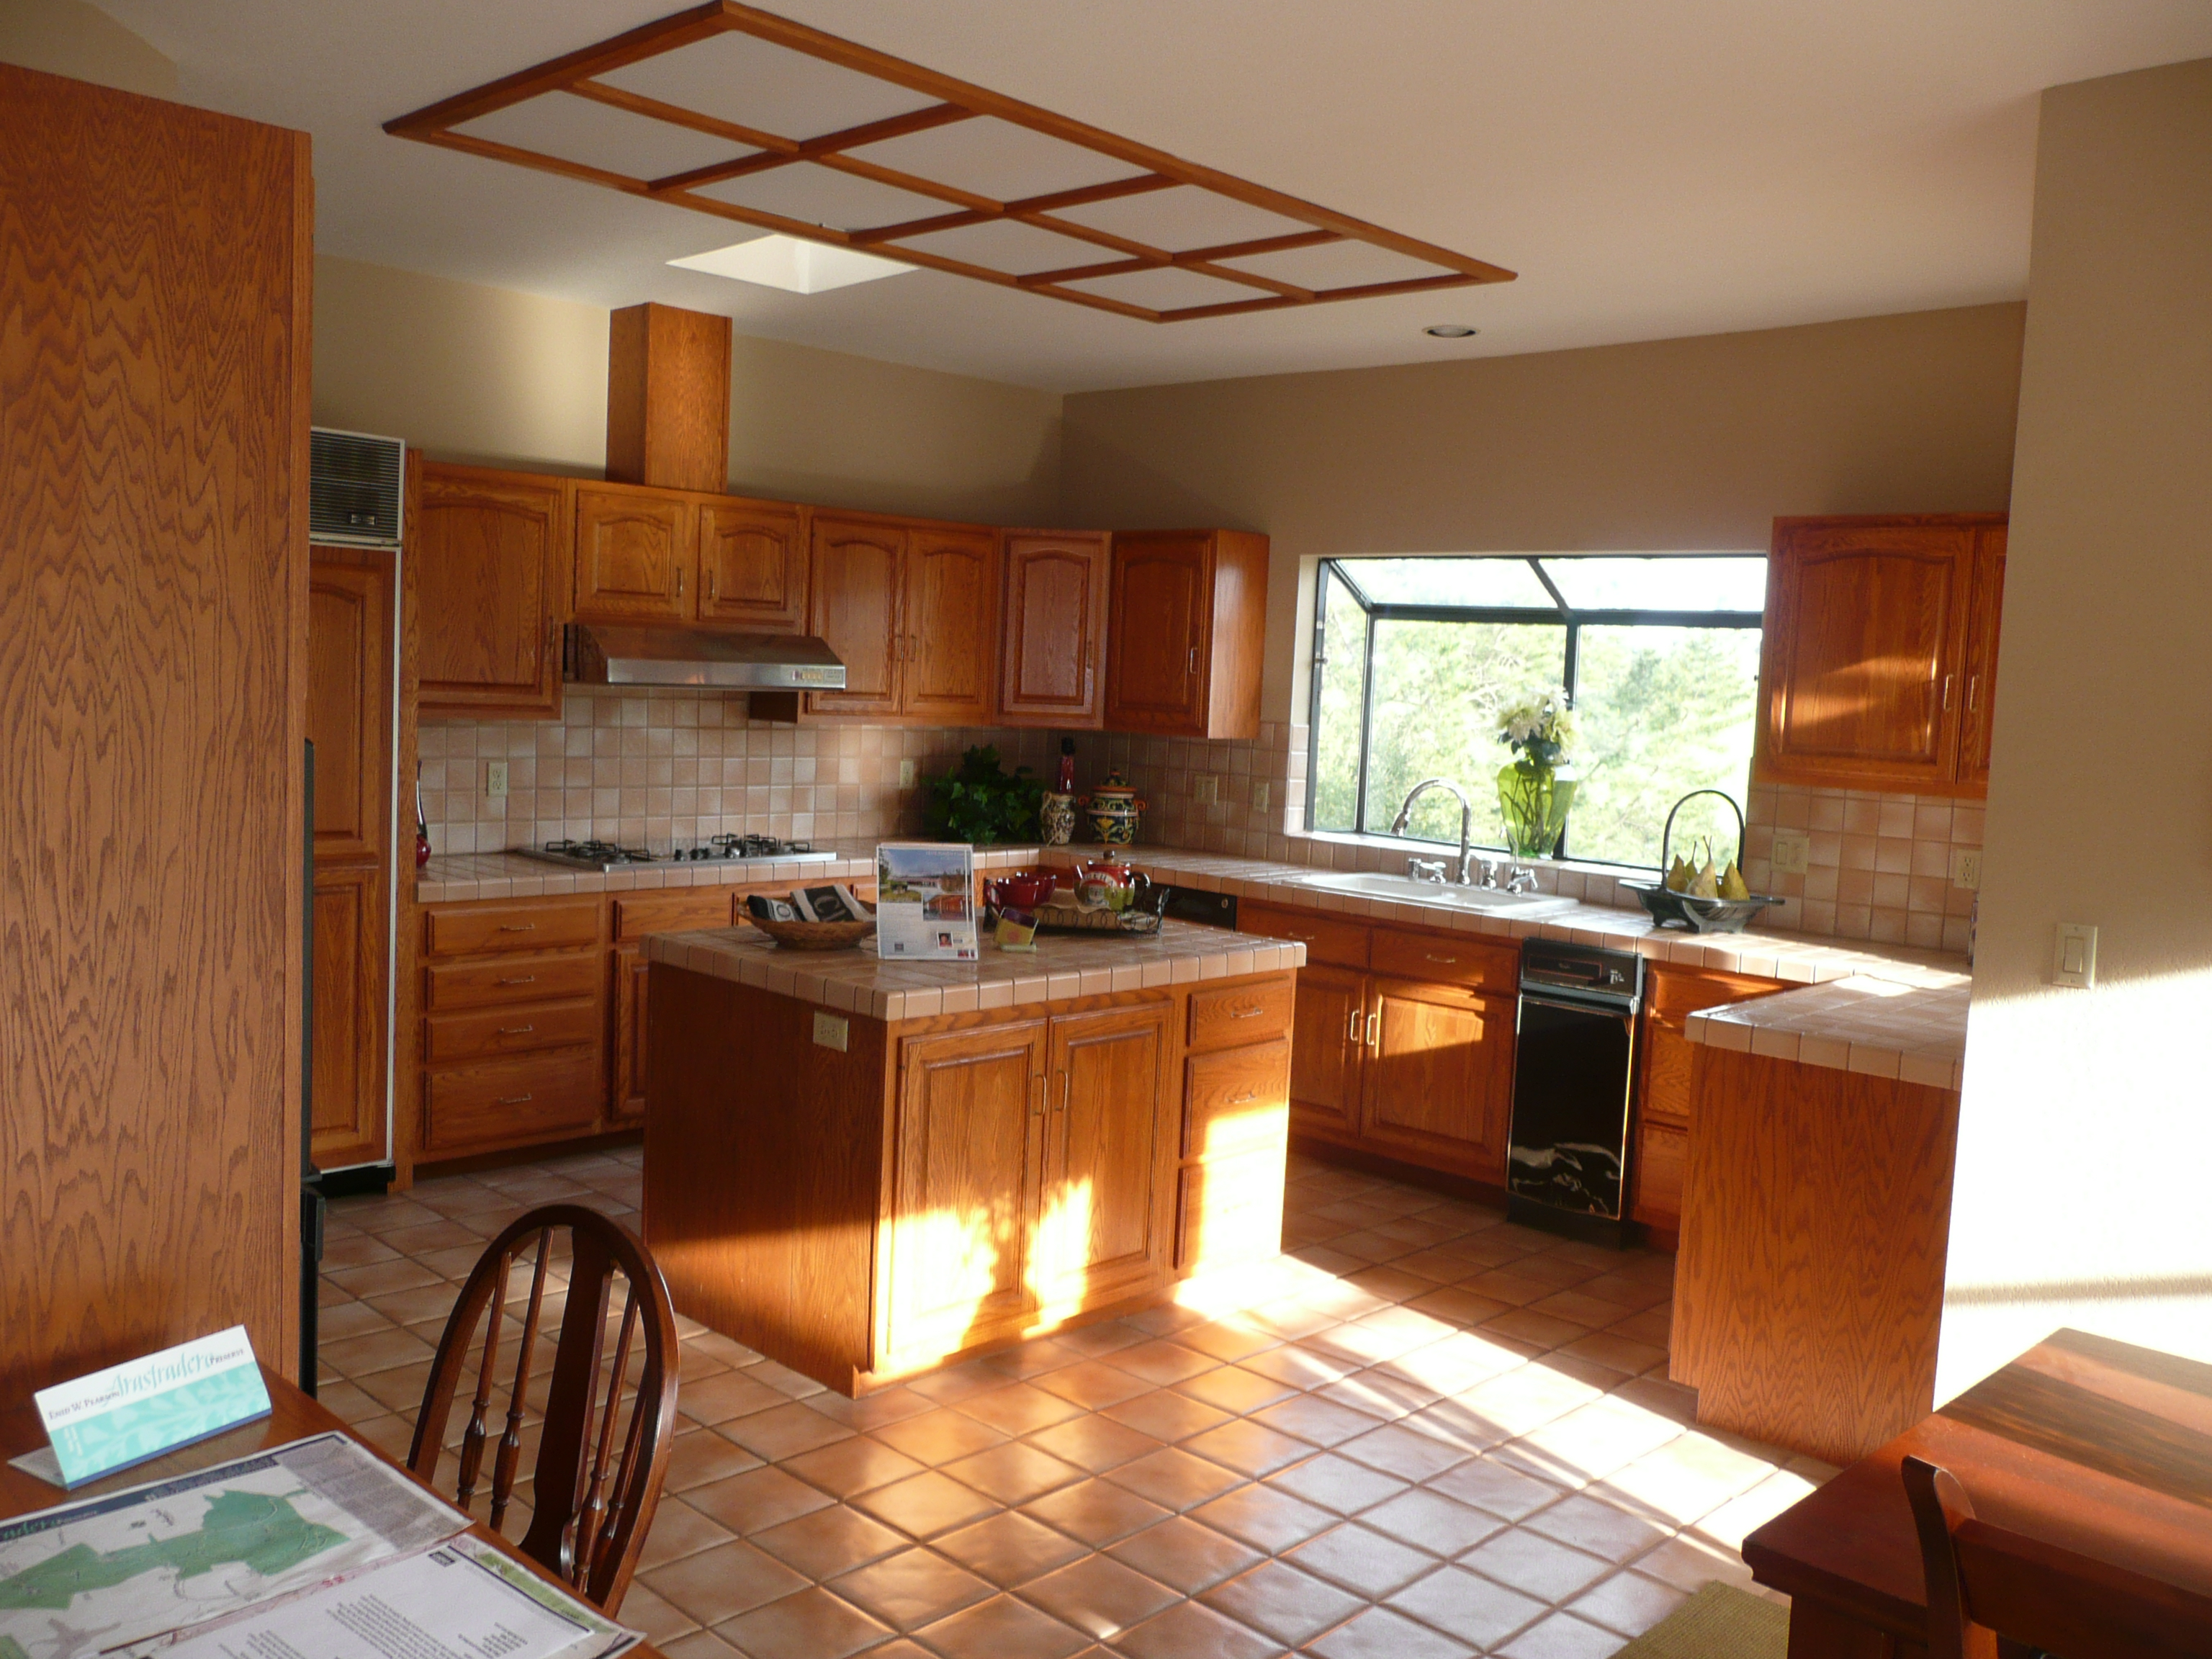 Superb Kitchen Feng Shui Colors Part - 14: Kitchen With Feng Shui Kitchen Color And Sunlight